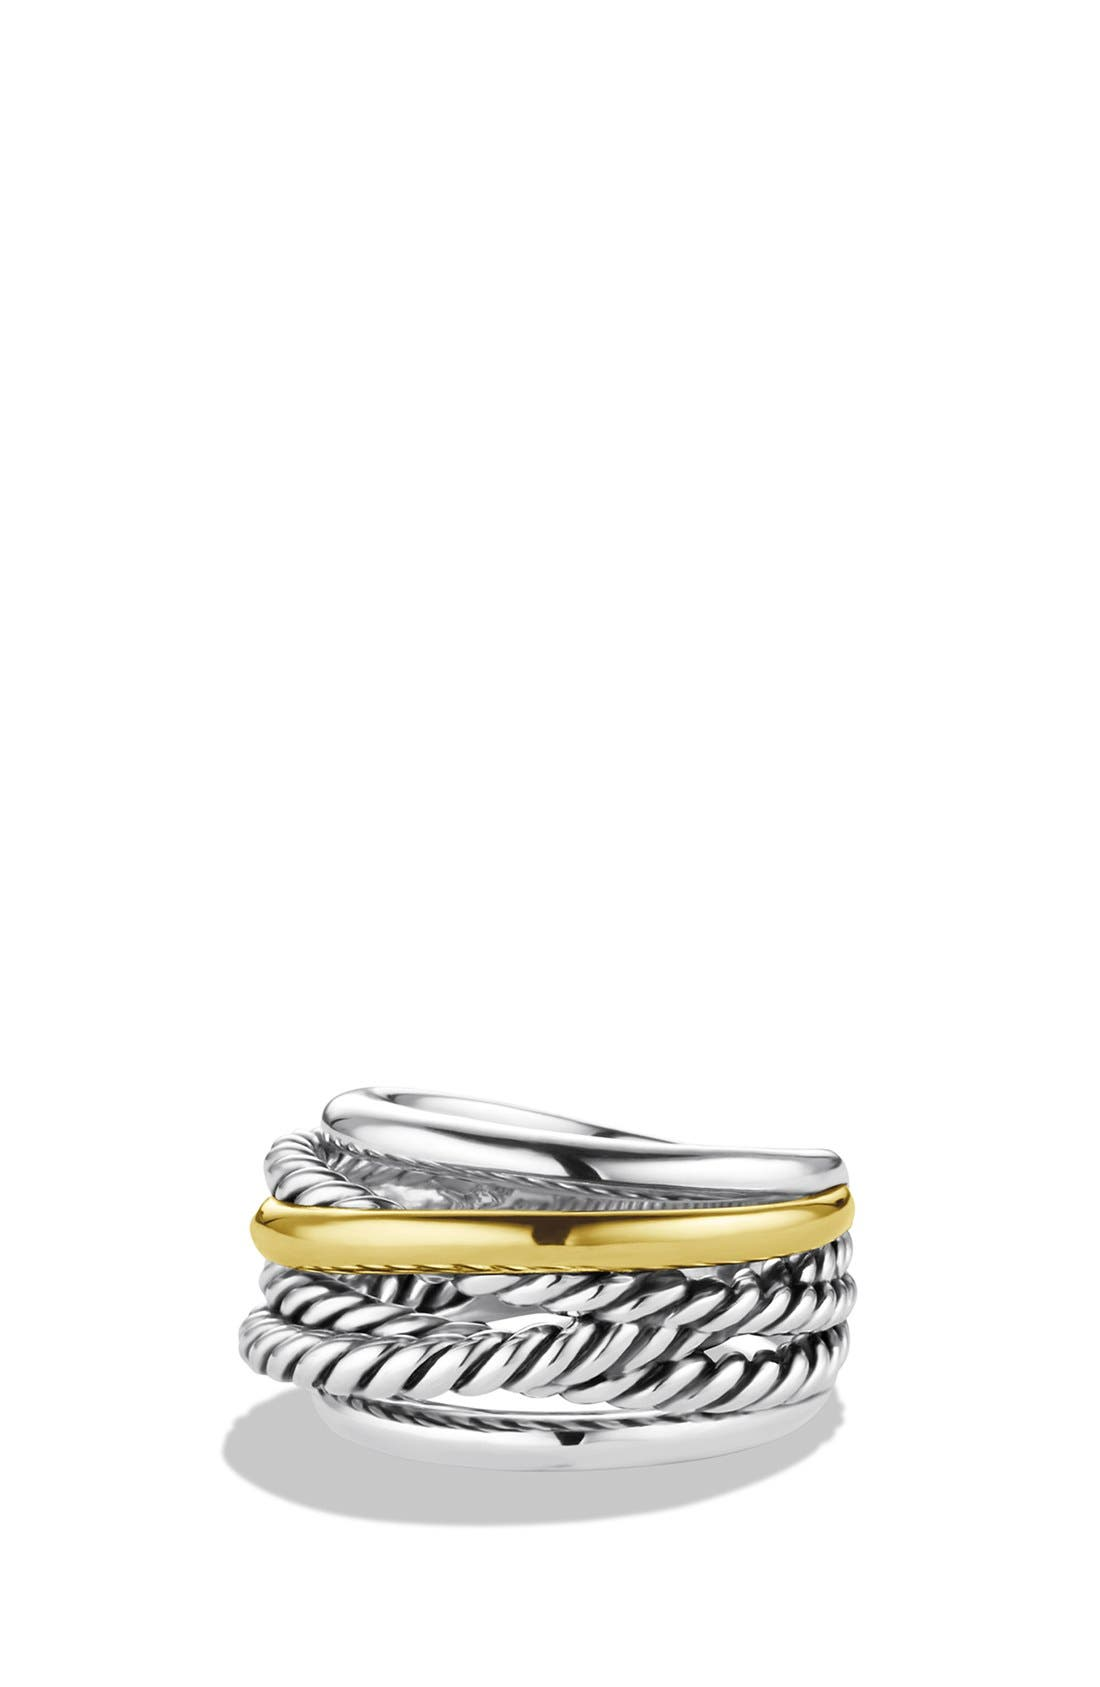 DAVID YURMAN 'Crossover' Narrow Ring with Gold